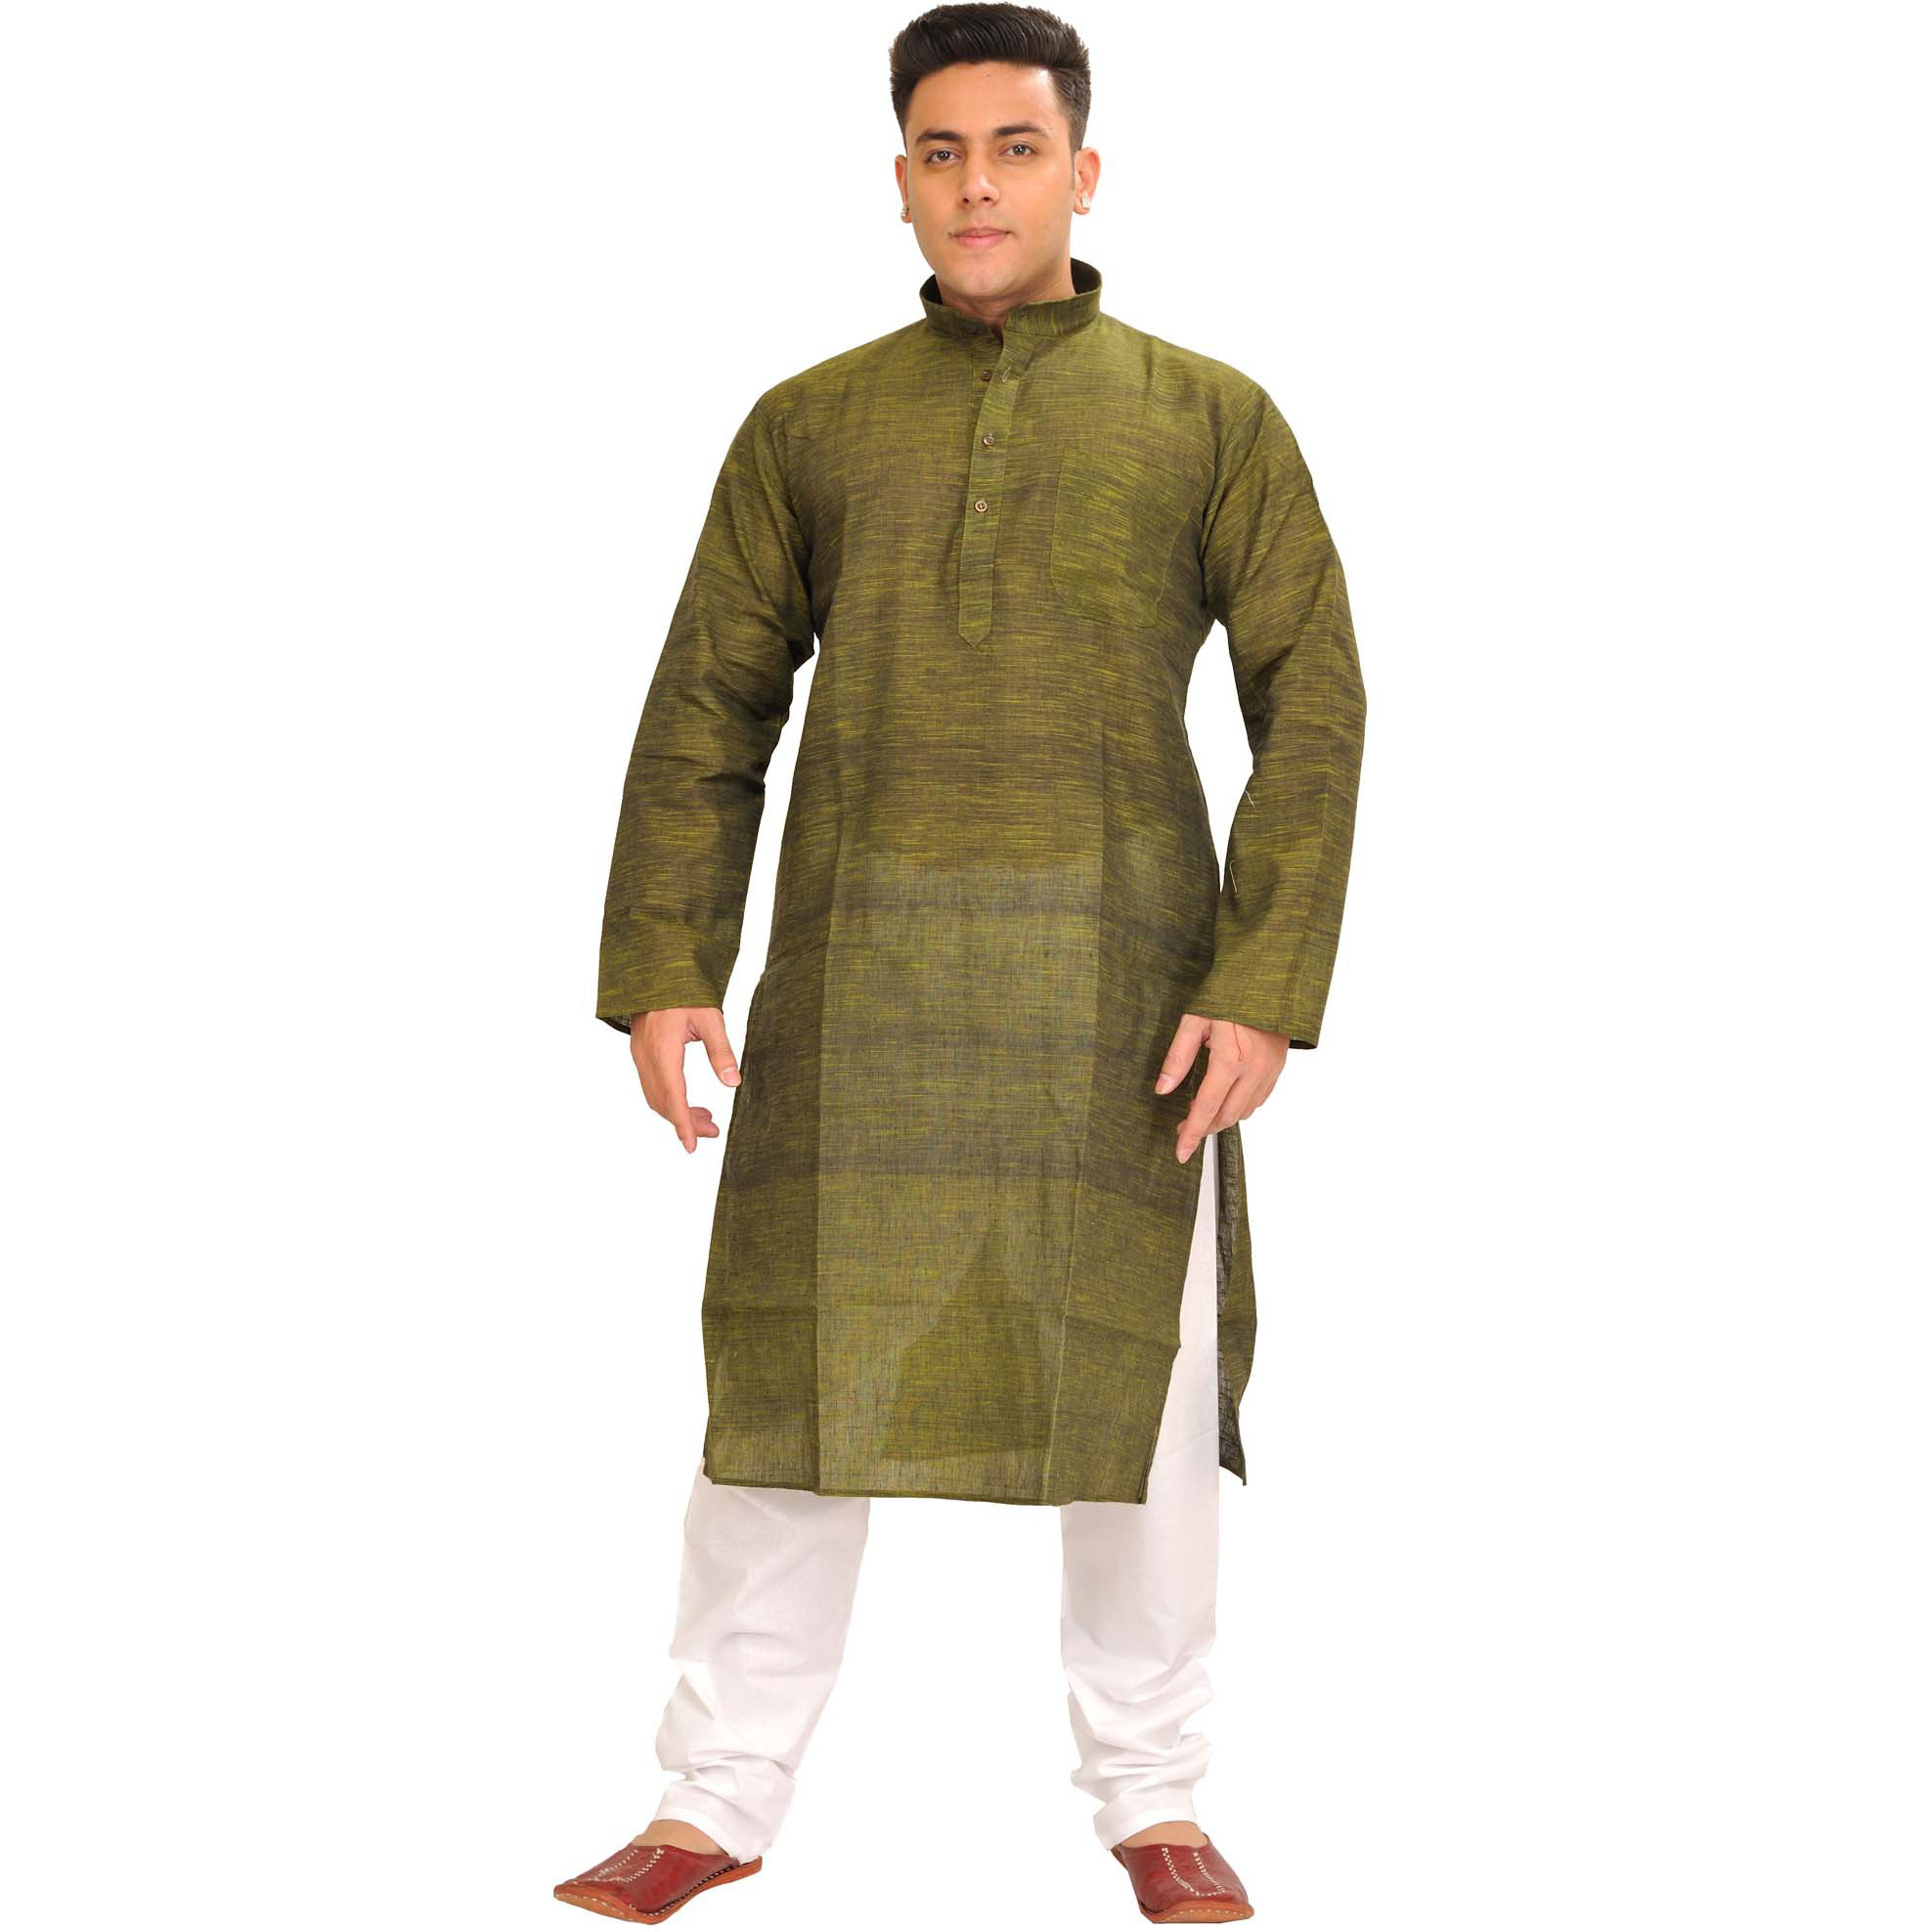 Khadi Kurta Pajama Set with Thread Weave